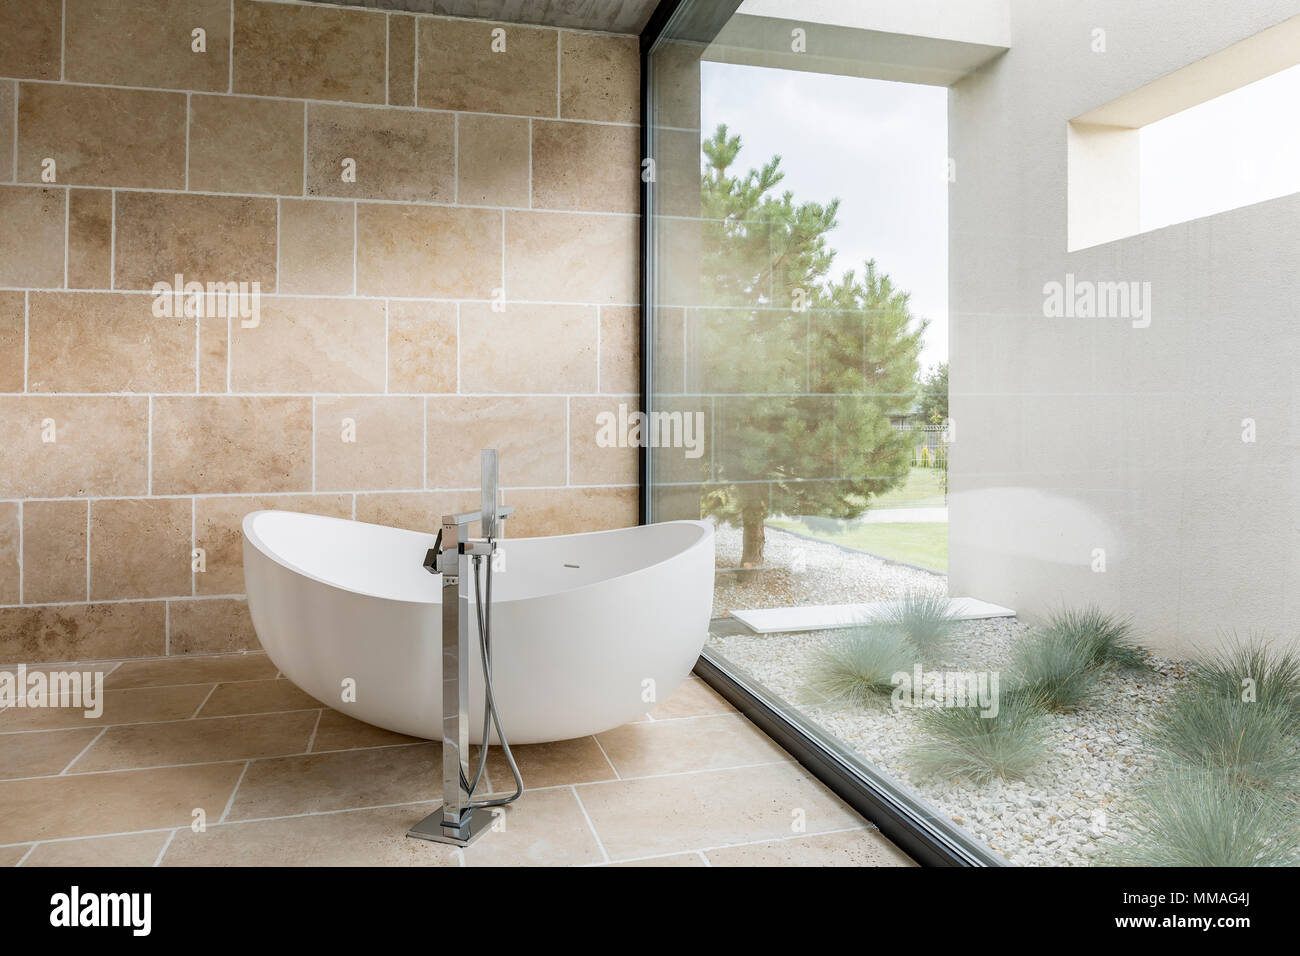 decorative glass block borders for a shower wall or windows.htm bathroom tiling monochromatic stock photos   bathroom tiling  bathroom tiling monochromatic stock